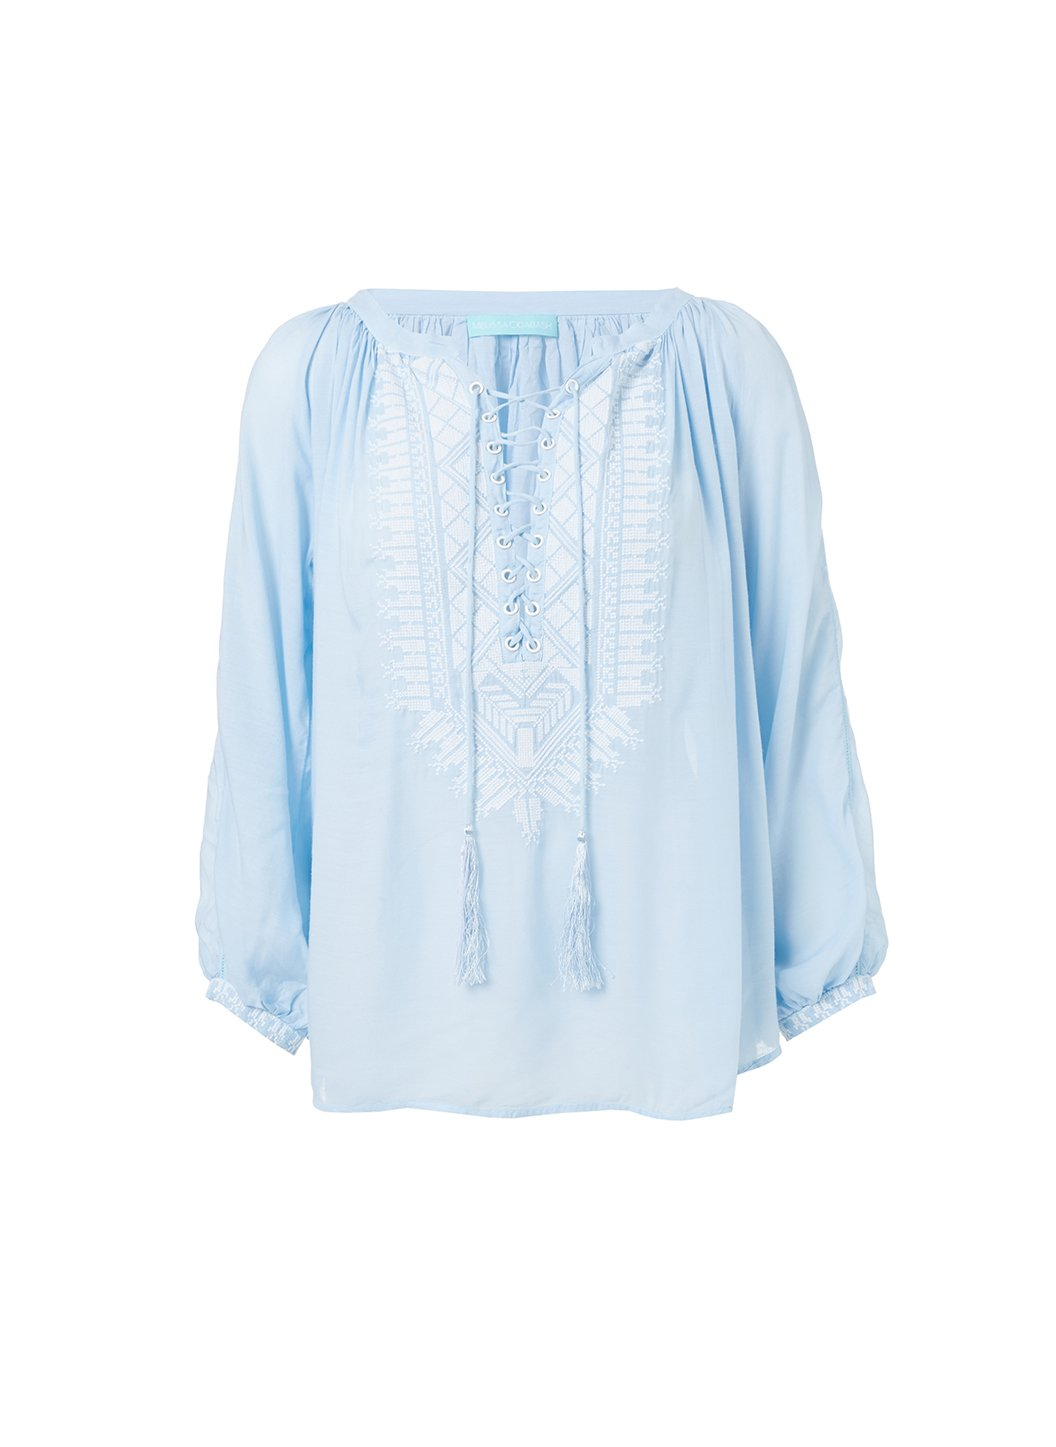 simona maya white laceup embroidered blouse 2019